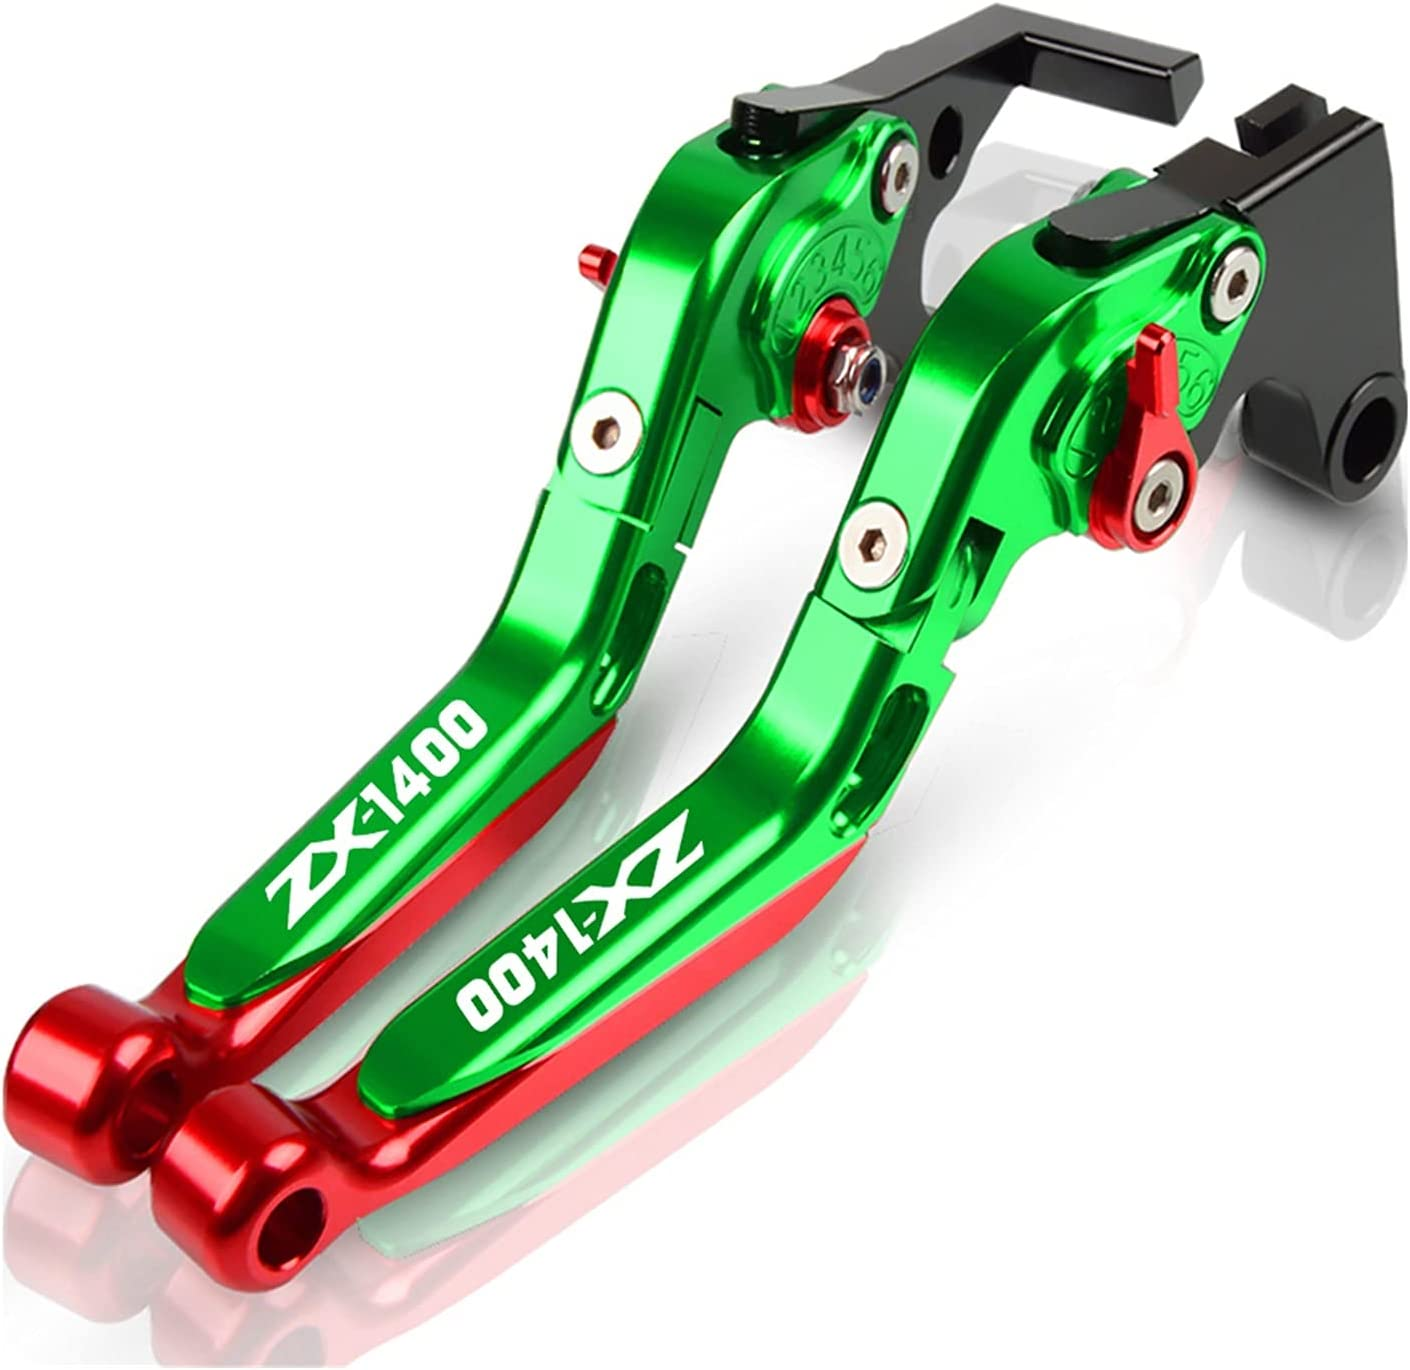 JHDS Sports Brake Clutch Ranking TOP3 Special price Pivot Motorc Levers